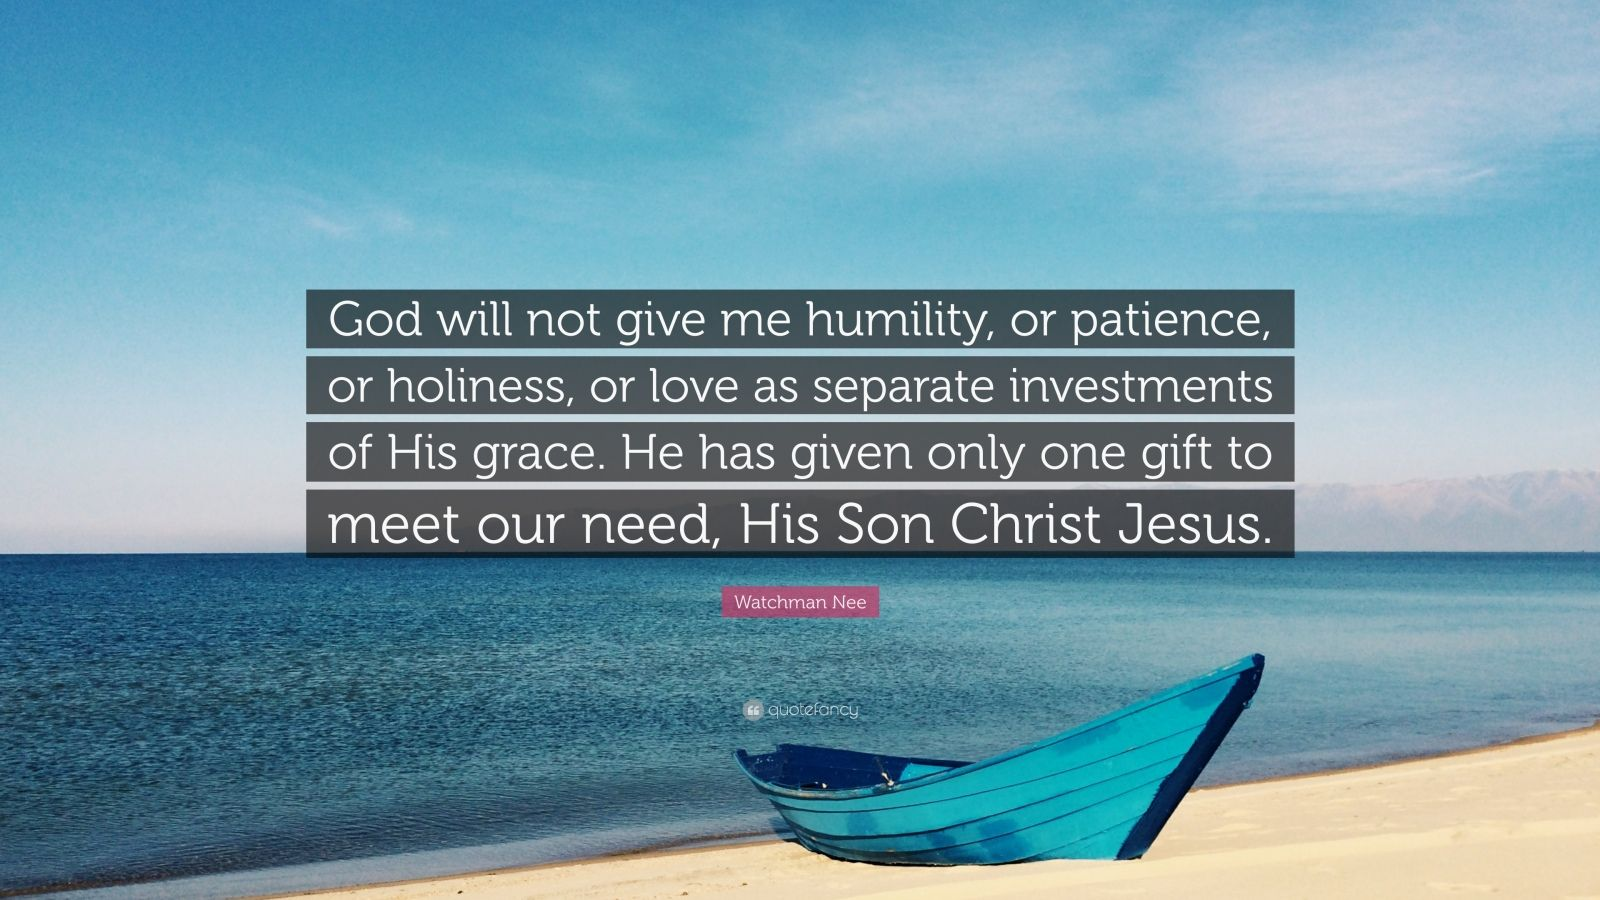 """Watchman Nee Quote: """"God will not give me humility, or patience, or holiness, or love as separate investments of His grace. He has given only one gift to meet our need, His Son Christ Jesus."""""""